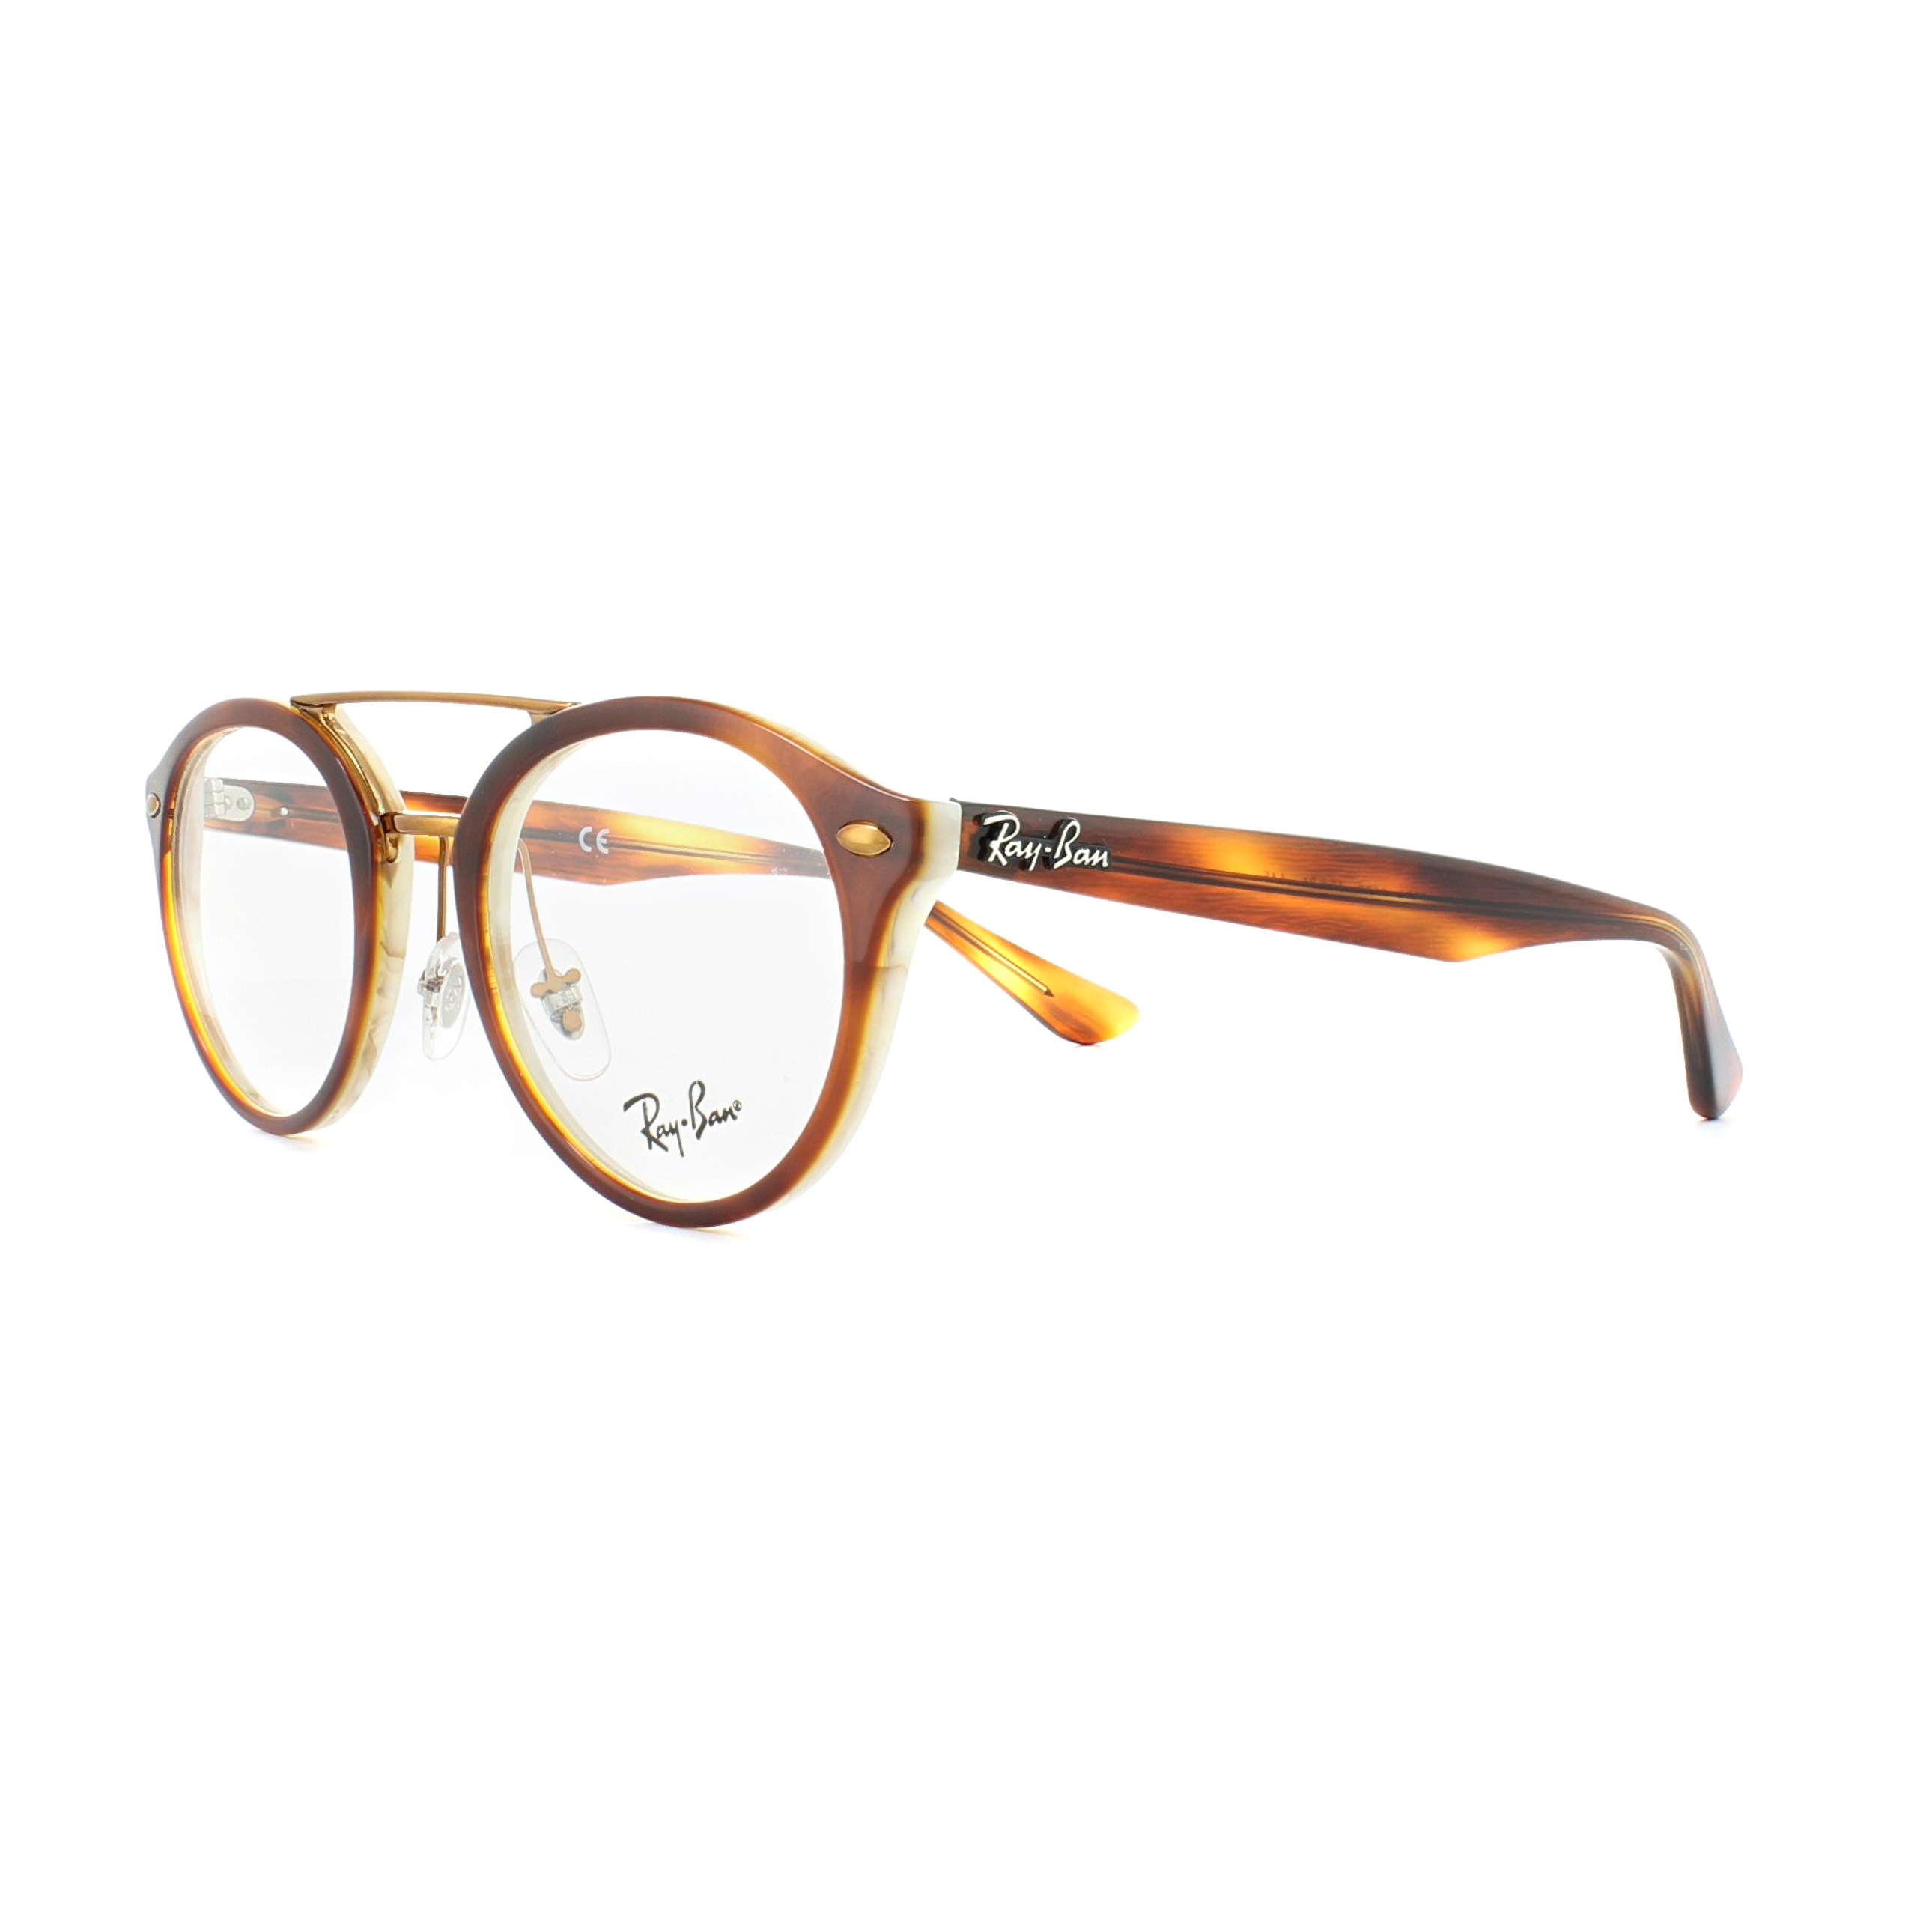 Sentinel Ray-Ban Glasses Frames 5354 5677 Havana Brown Horn Beige 50mm Mens  Womens f9de06c85cff